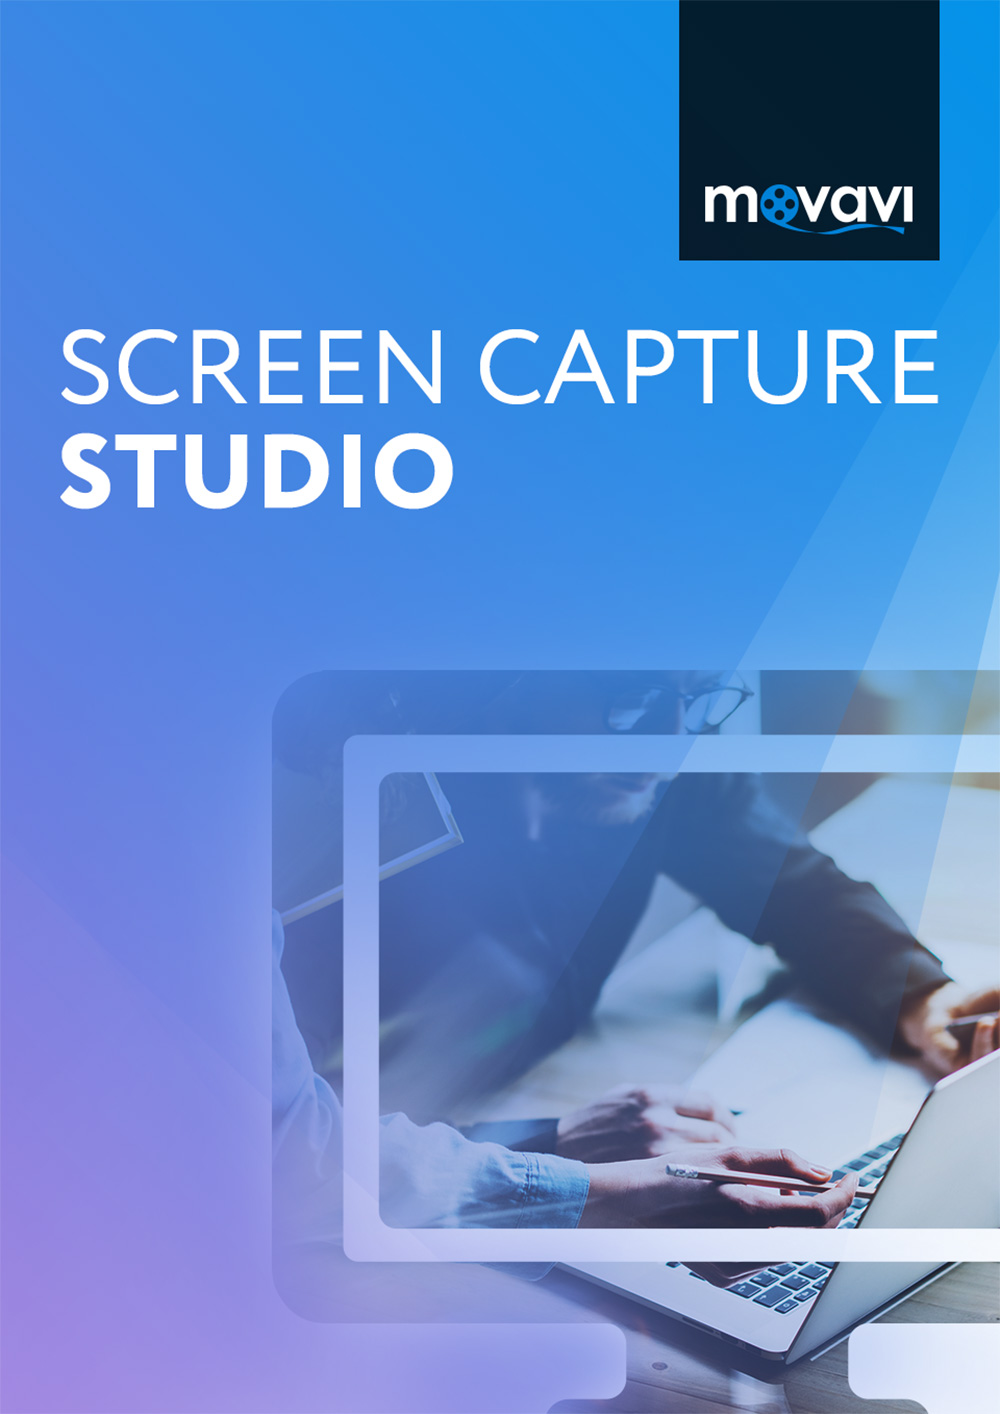 Movavi Screen Capture Studio for Mac 5 Business Edition [Download] by Movavi